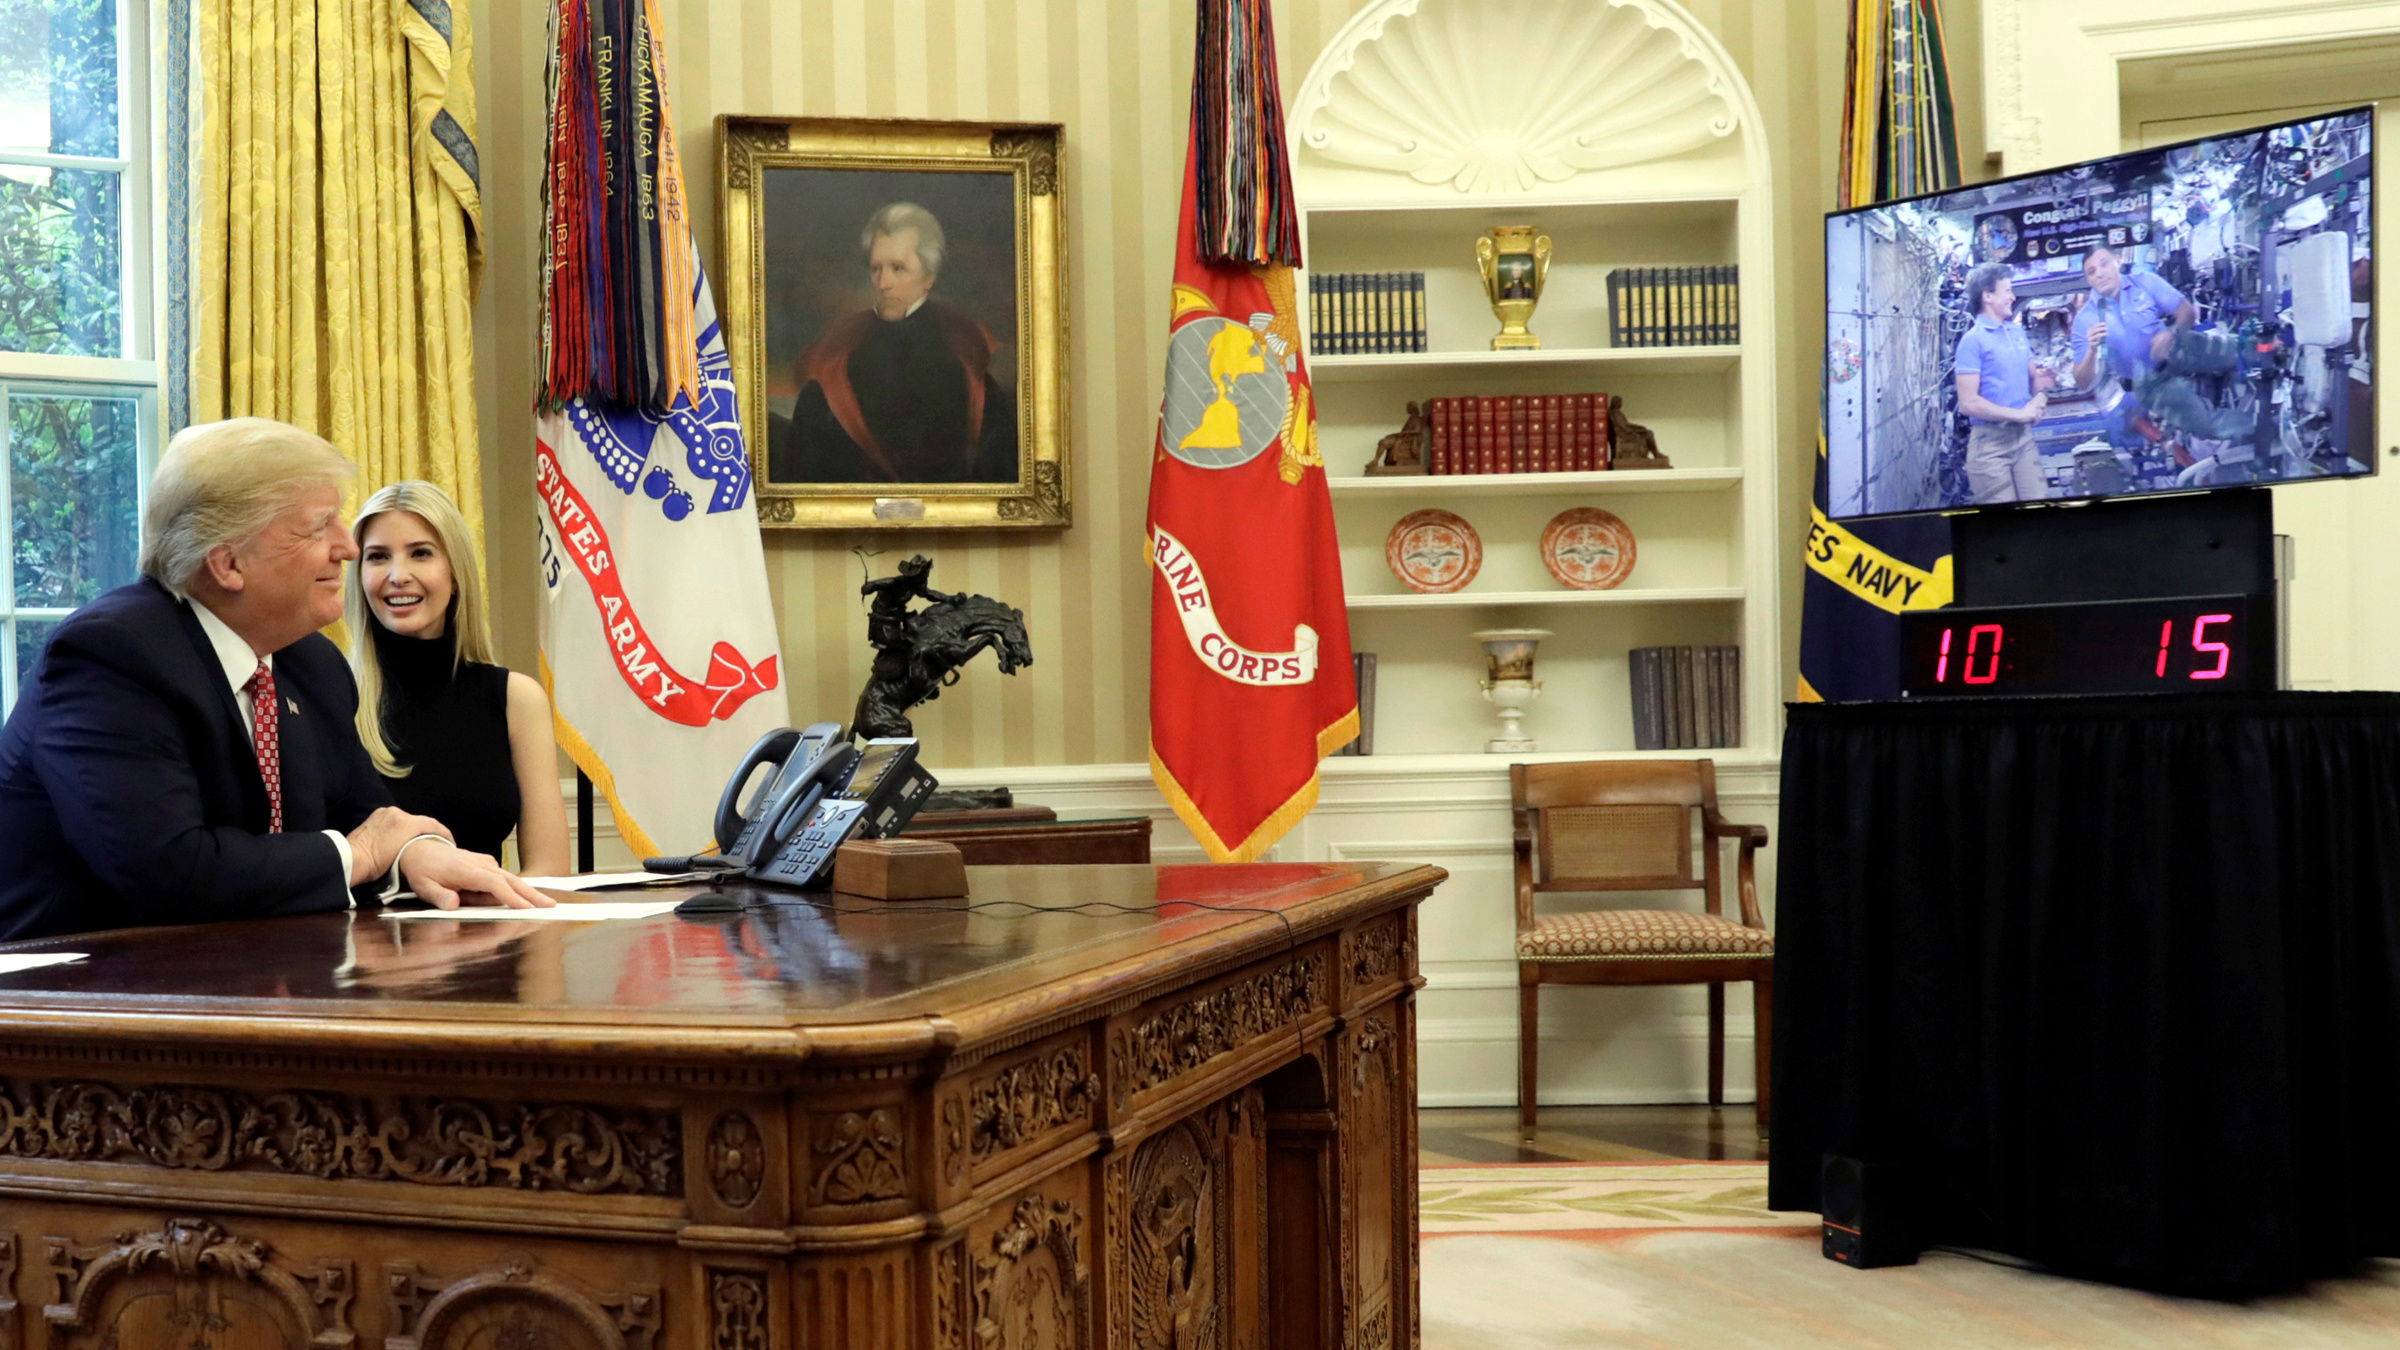 iU.S. President Donald Trump and his daughter Ivanka hold a video conference call with Commander Peggy Whitson and Flight Engineer Jack Fischer of NASA on the International Space Station from the Oval Office of the White House in Washington, U.S., April 24, 2017.